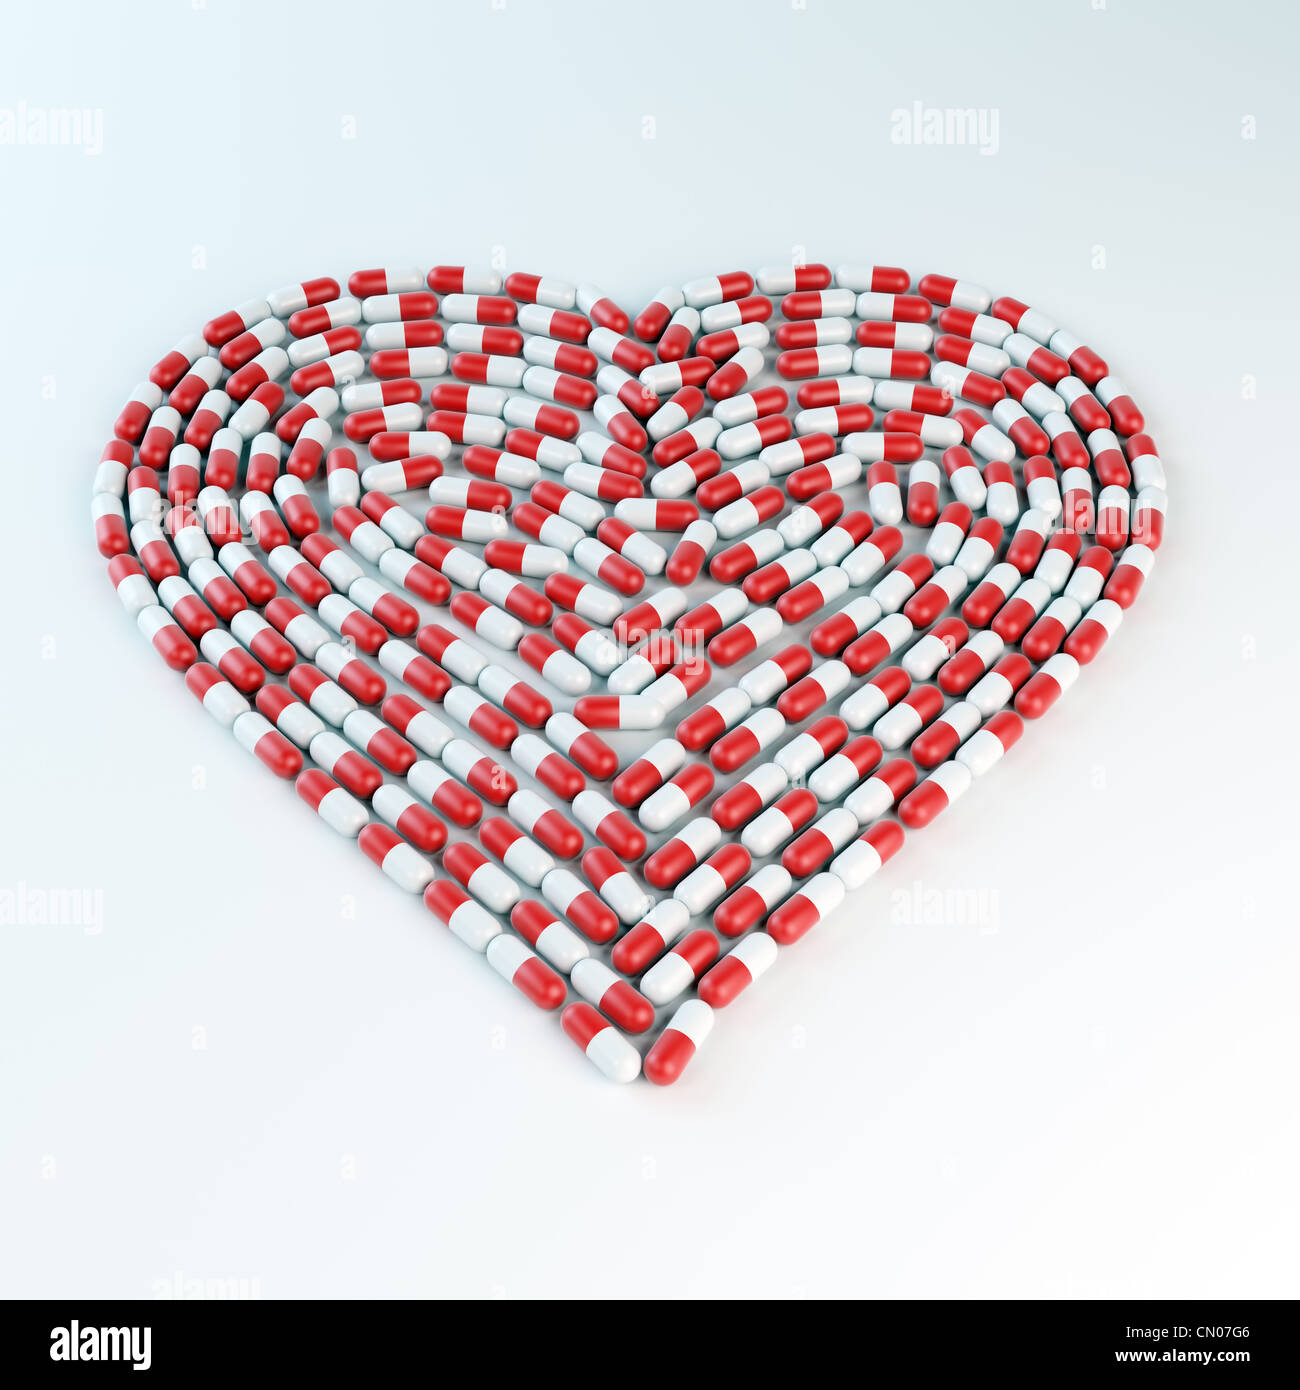 Red and white capsules forming a heart shape - cardiology concept Stock Photo